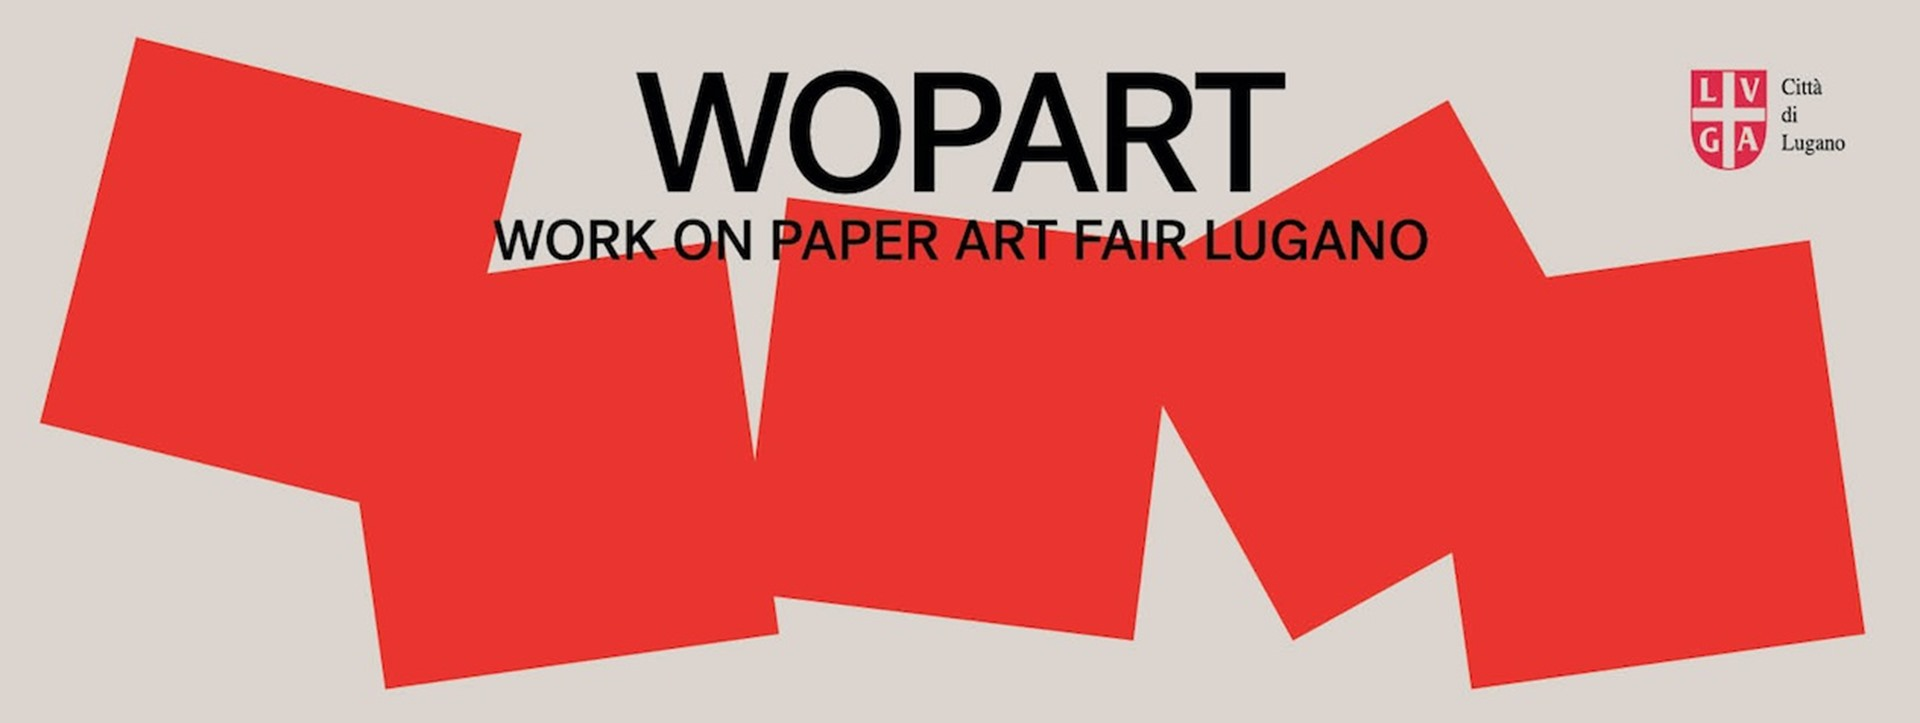 WOPART – Work on Paper Art Fair